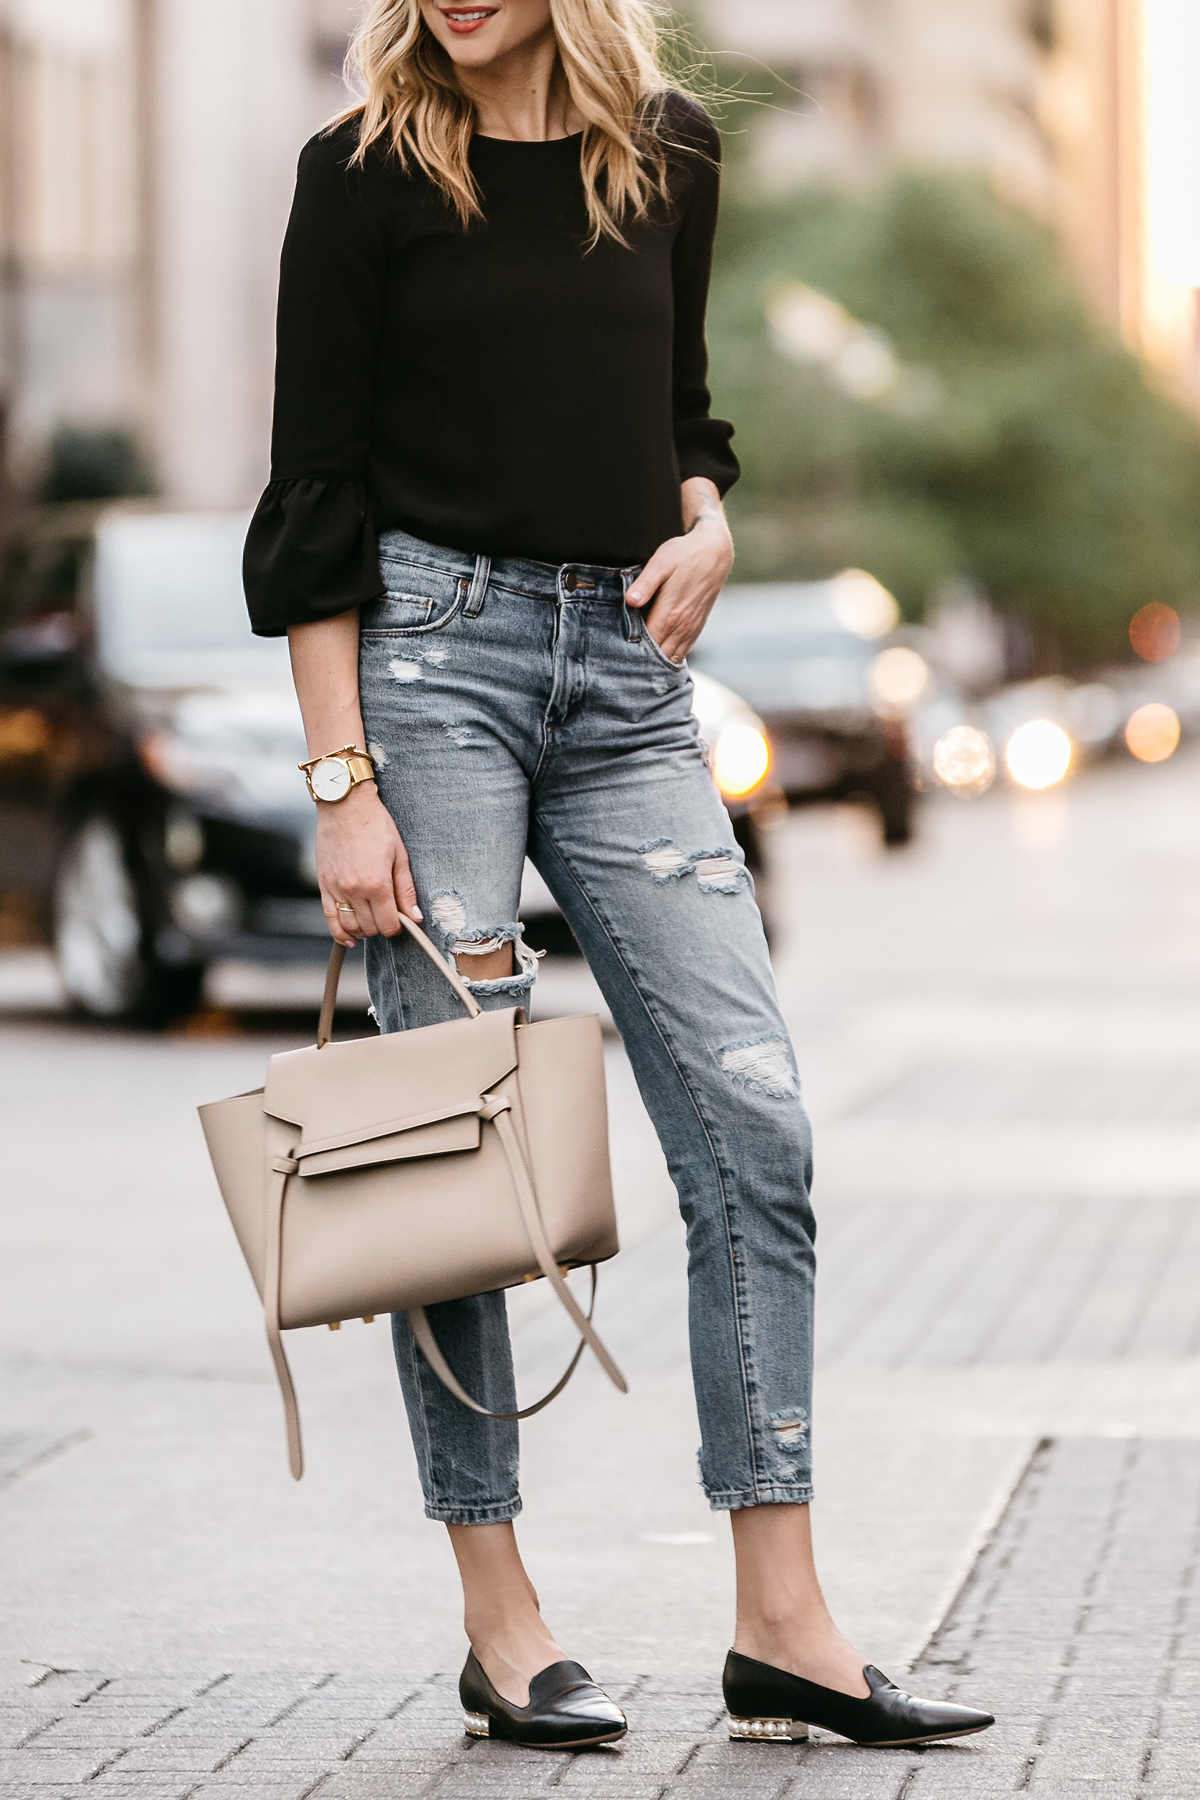 Fashion Jackson, Dallas Blogger, Fashion Blogger, Street Style, Black Bell Sleeve Top, Denim Ripped Mom Jeans, Celine Belt Bag, Nicholas Kirkwood Pearl Heeled Loafers